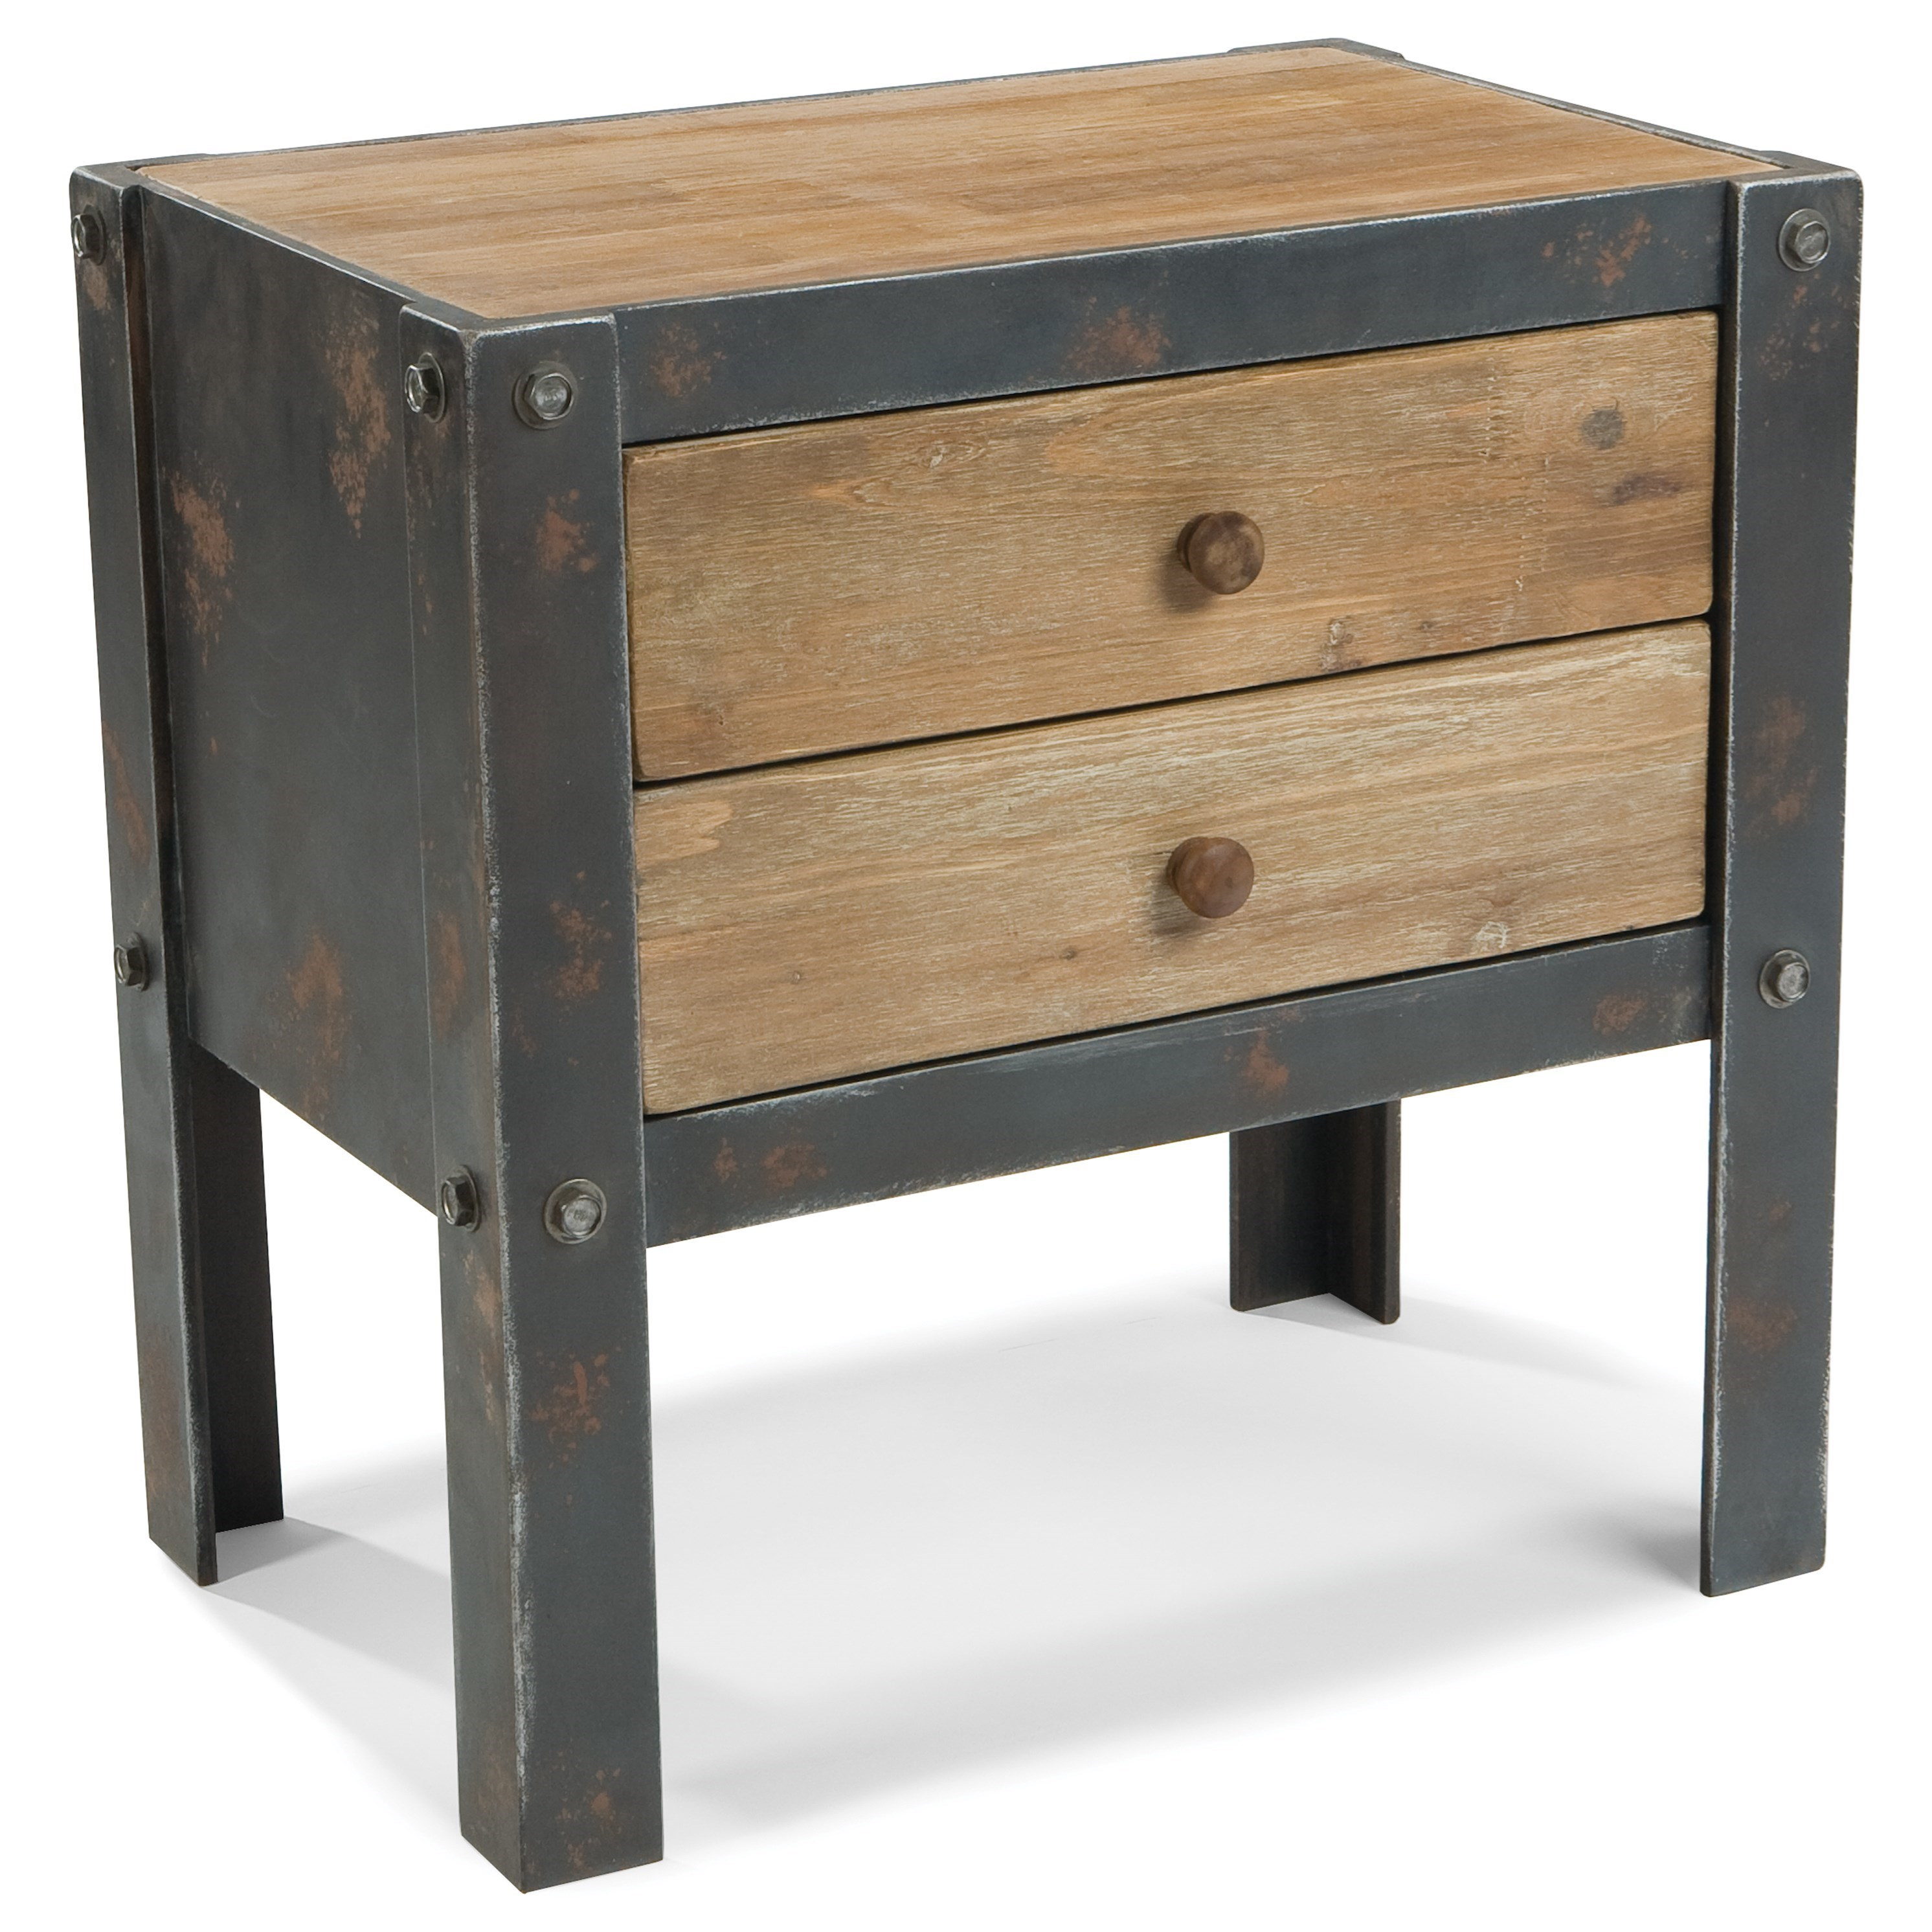 Industrial Side Table with 2 Drawers